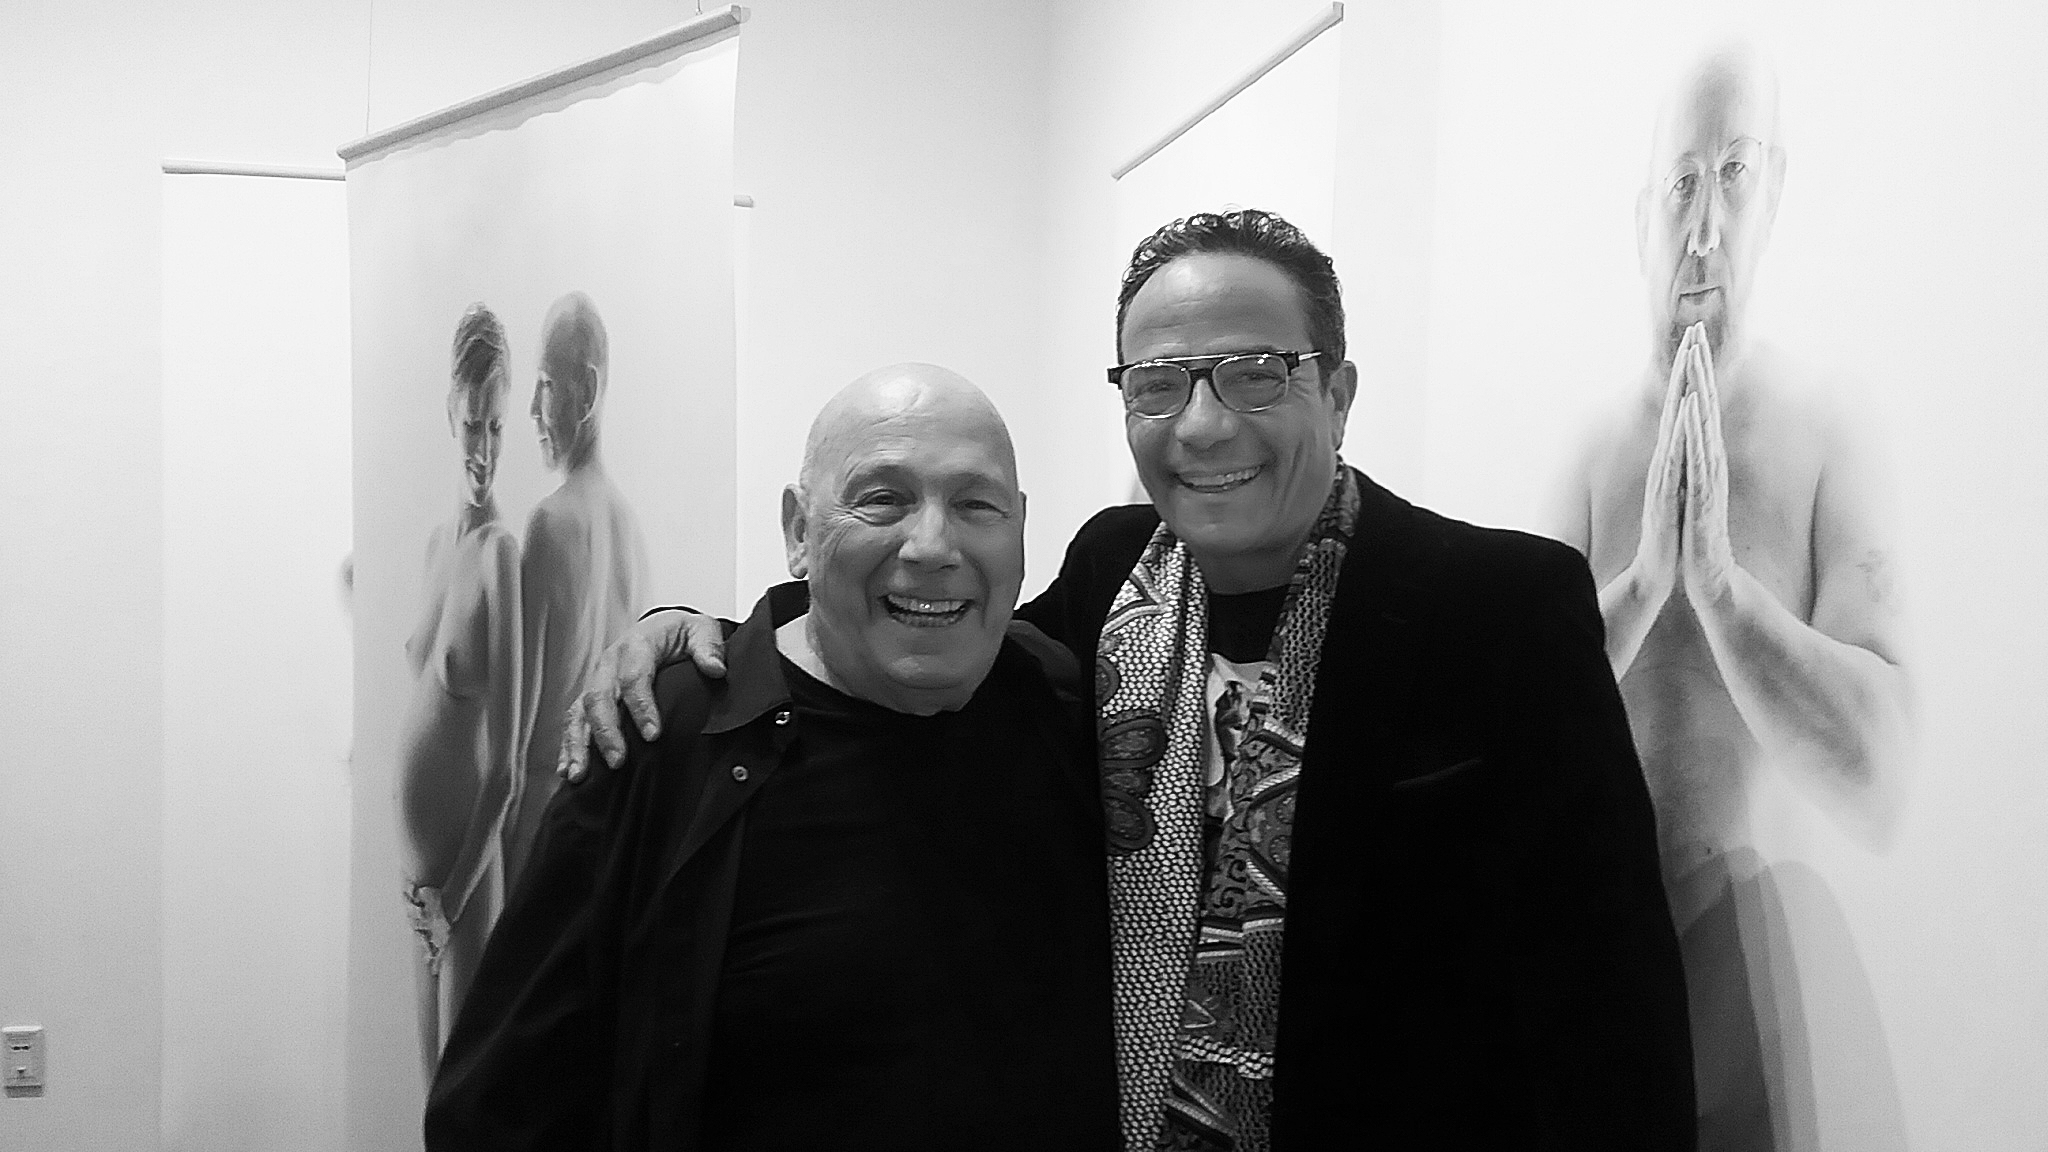 George Krause and Tony Ward at Introspective opening reception, UArts. March 28, 2018.